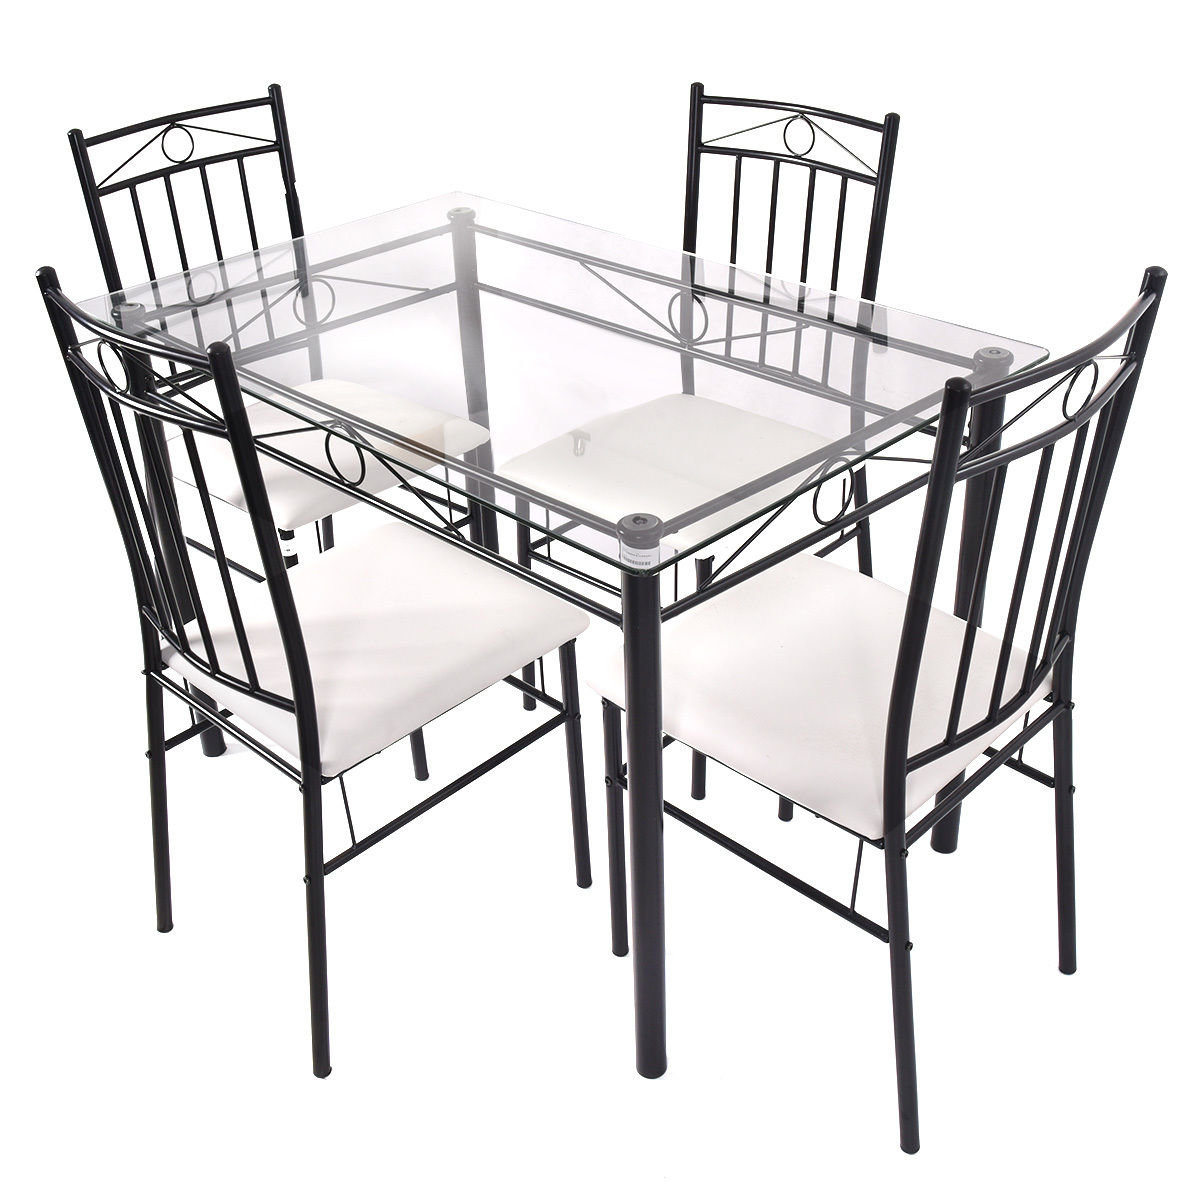 Shipststour 5 Piece Dining Set Pertaining To 2018 Ganya 5 Piece Dining Sets (Image 17 of 20)